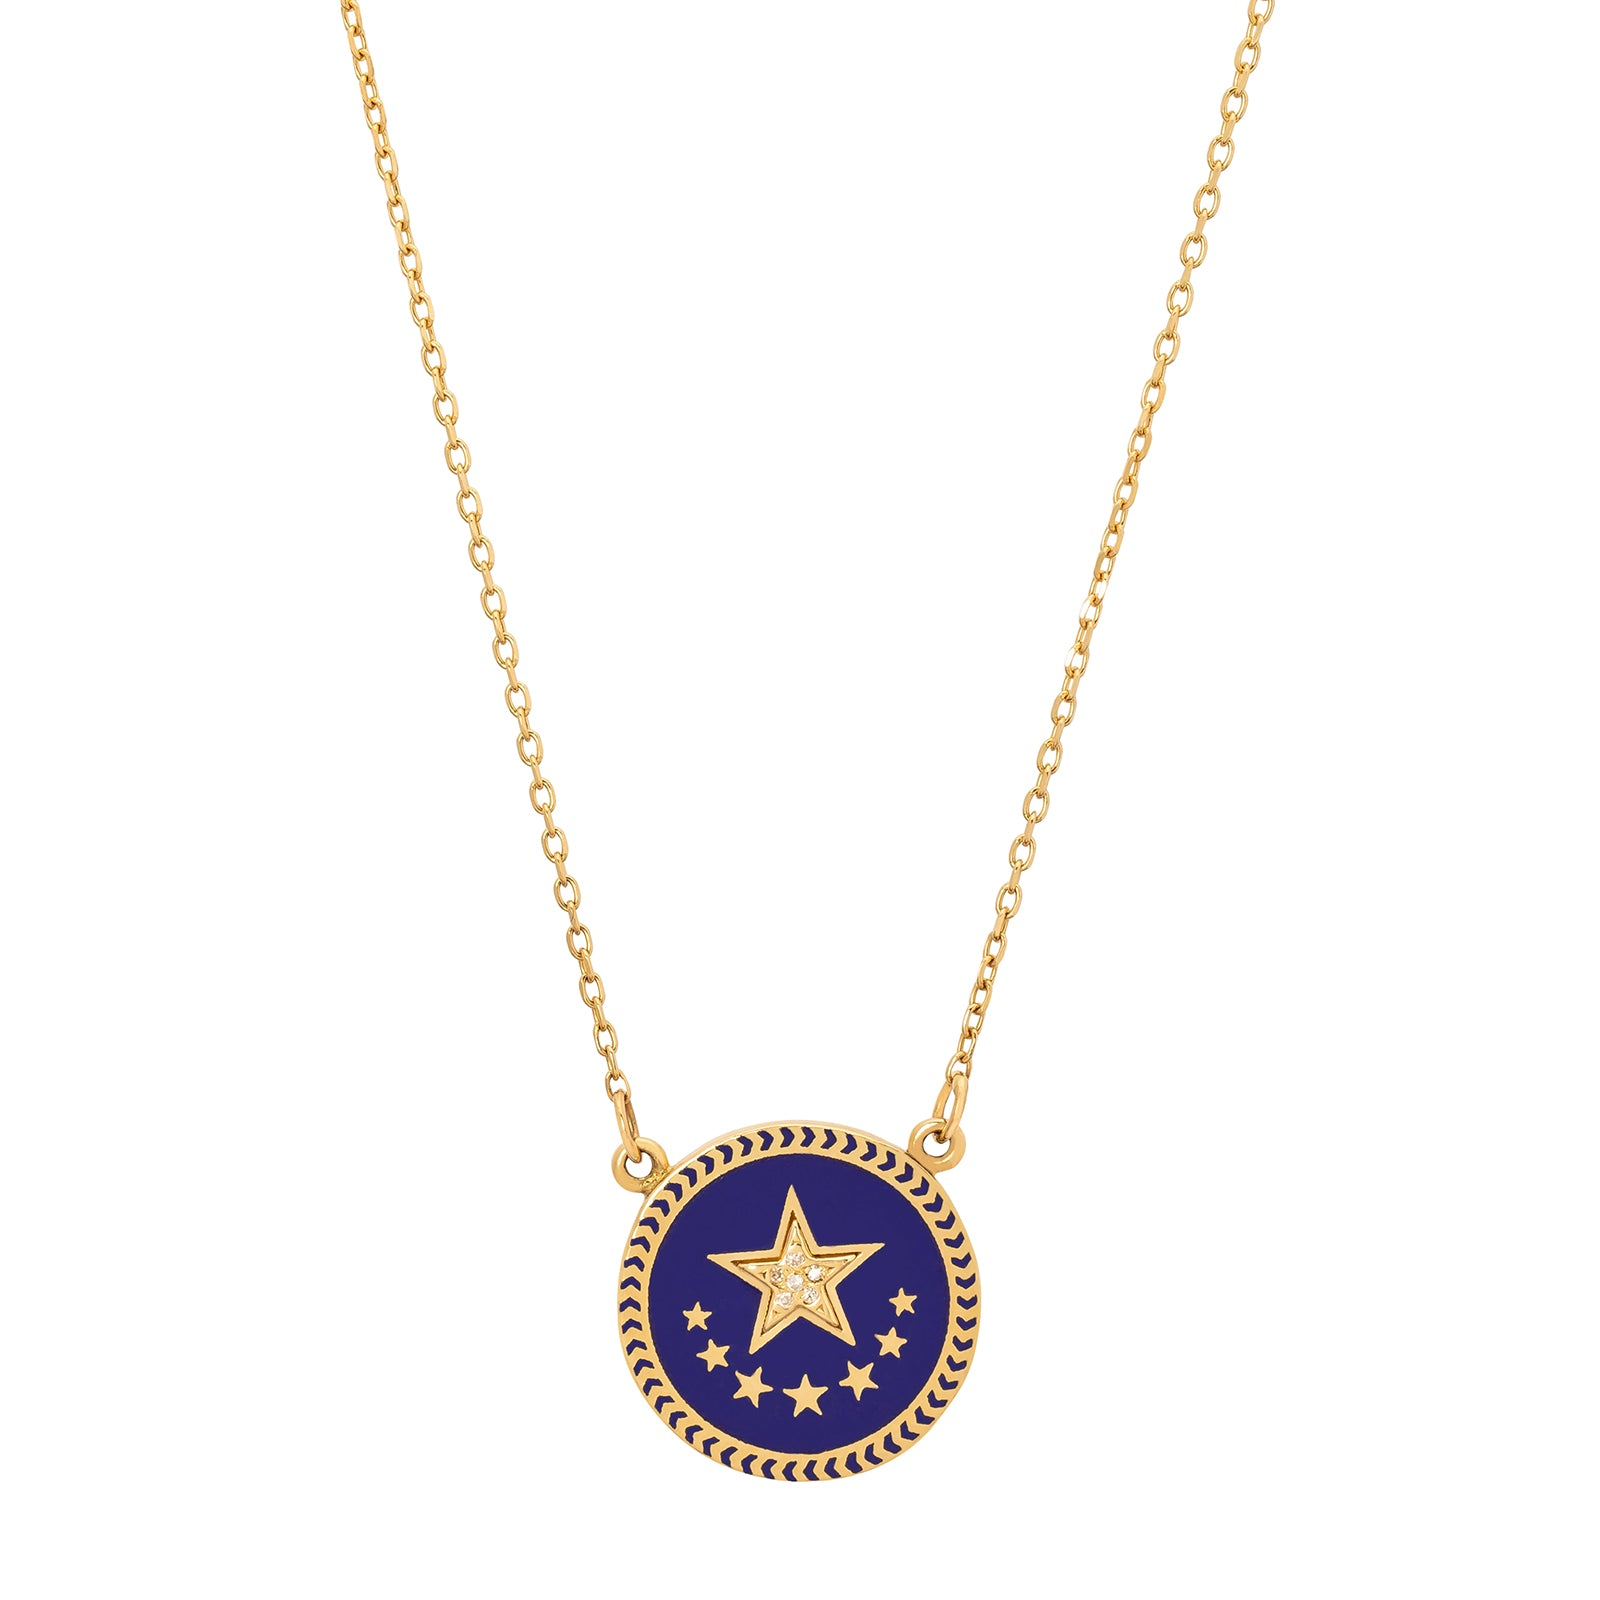 Foundrae Strength Enamel Necklace - Blue Star - Necklaces - Broken English Jewelry